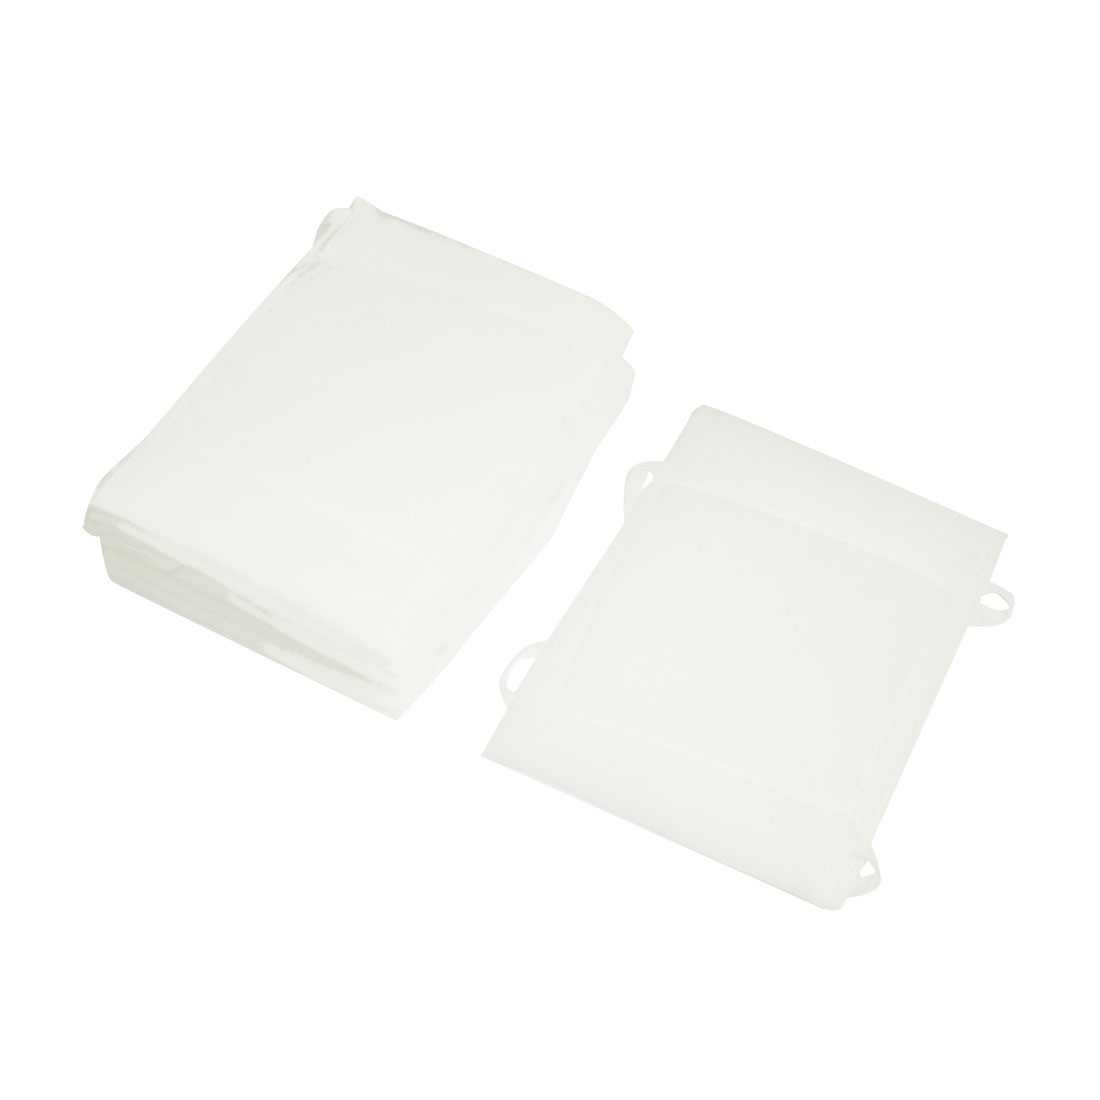 "6.5"" x 4.9"" Washable White Soft Cotton Face Mouth Mask 10Pcs"